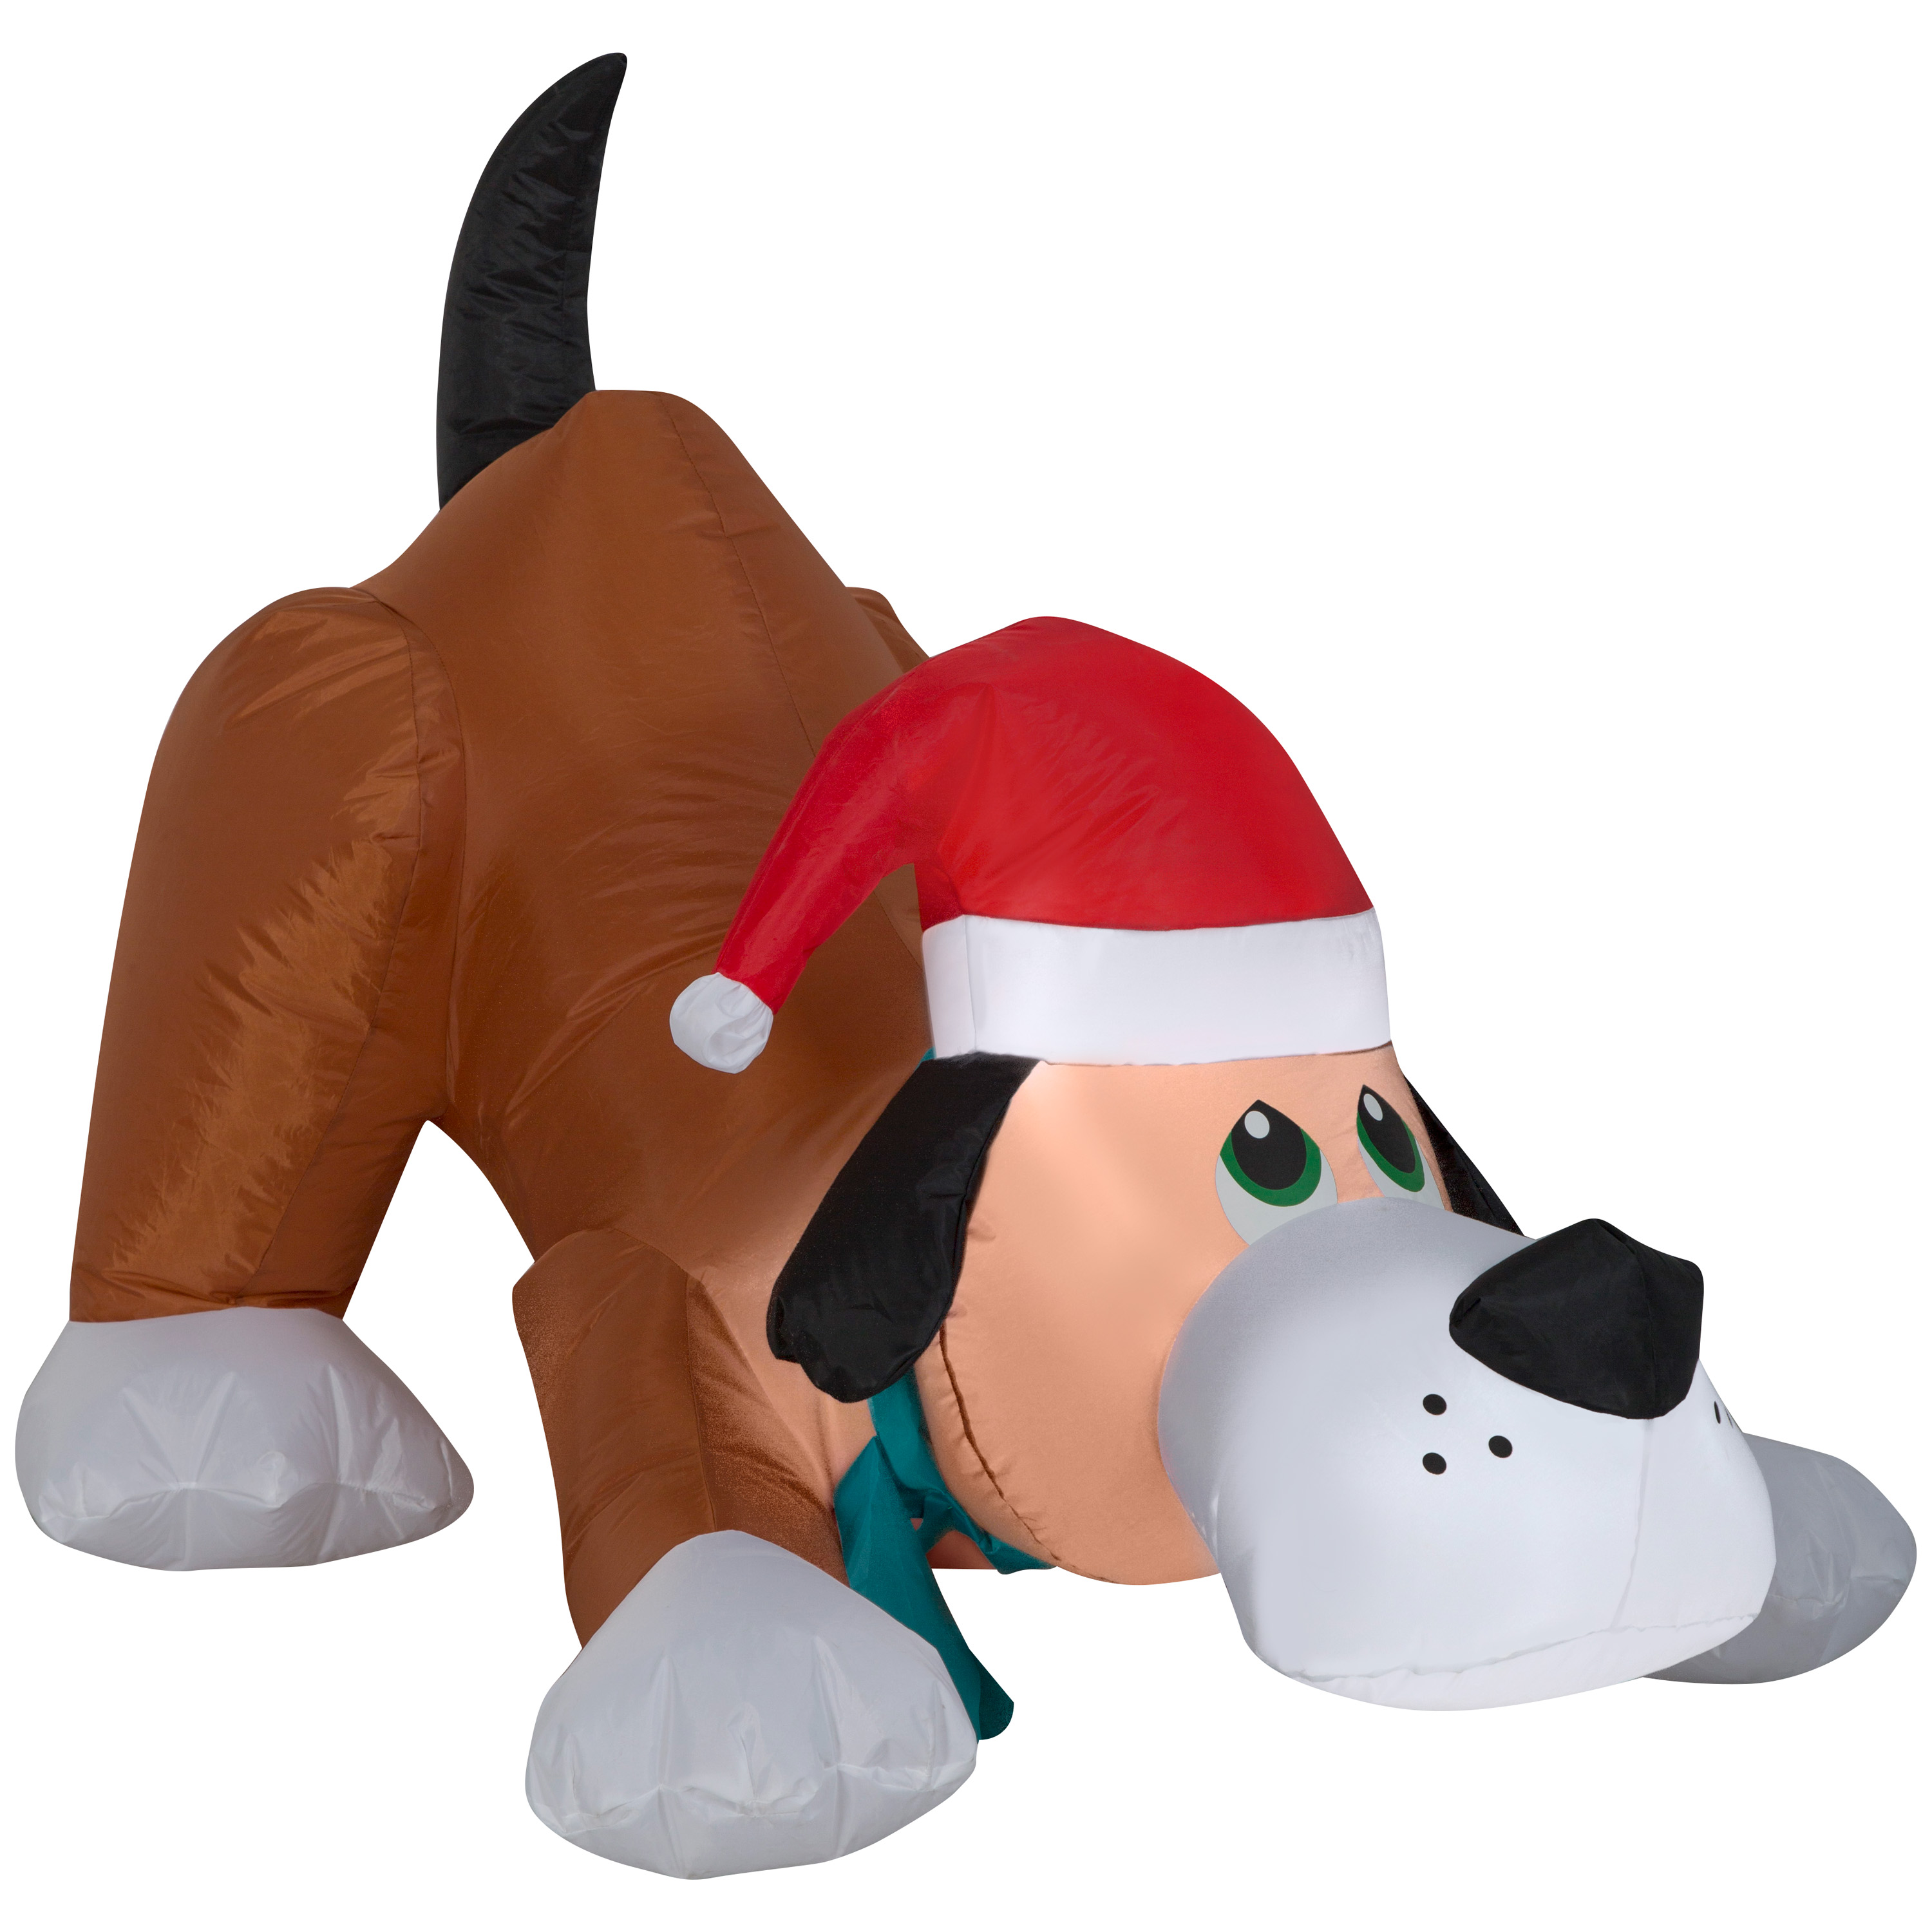 Airblown Christmas Inflatable Playful Puppy 2.5' Tall